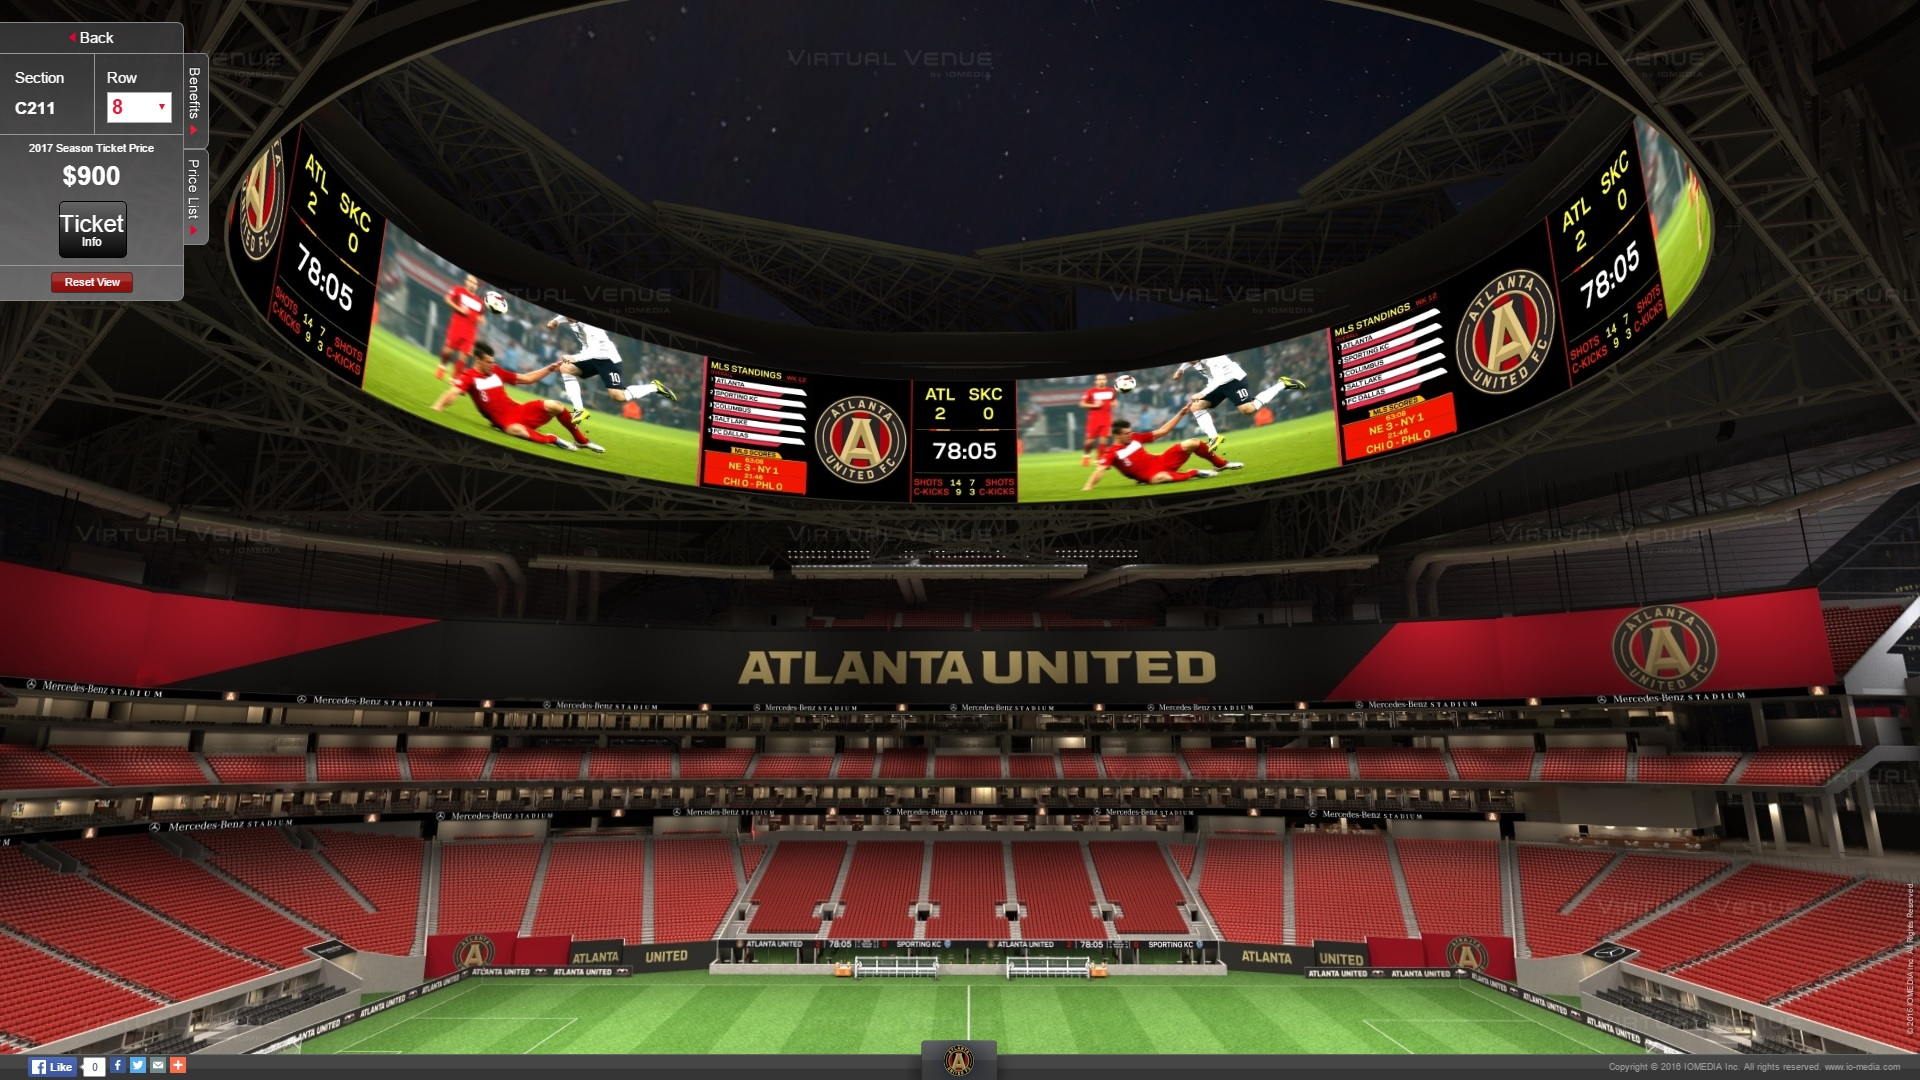 Atlanta united 39 s virtual venue seating for mercedes benz for Mercedes benz stadium calendar